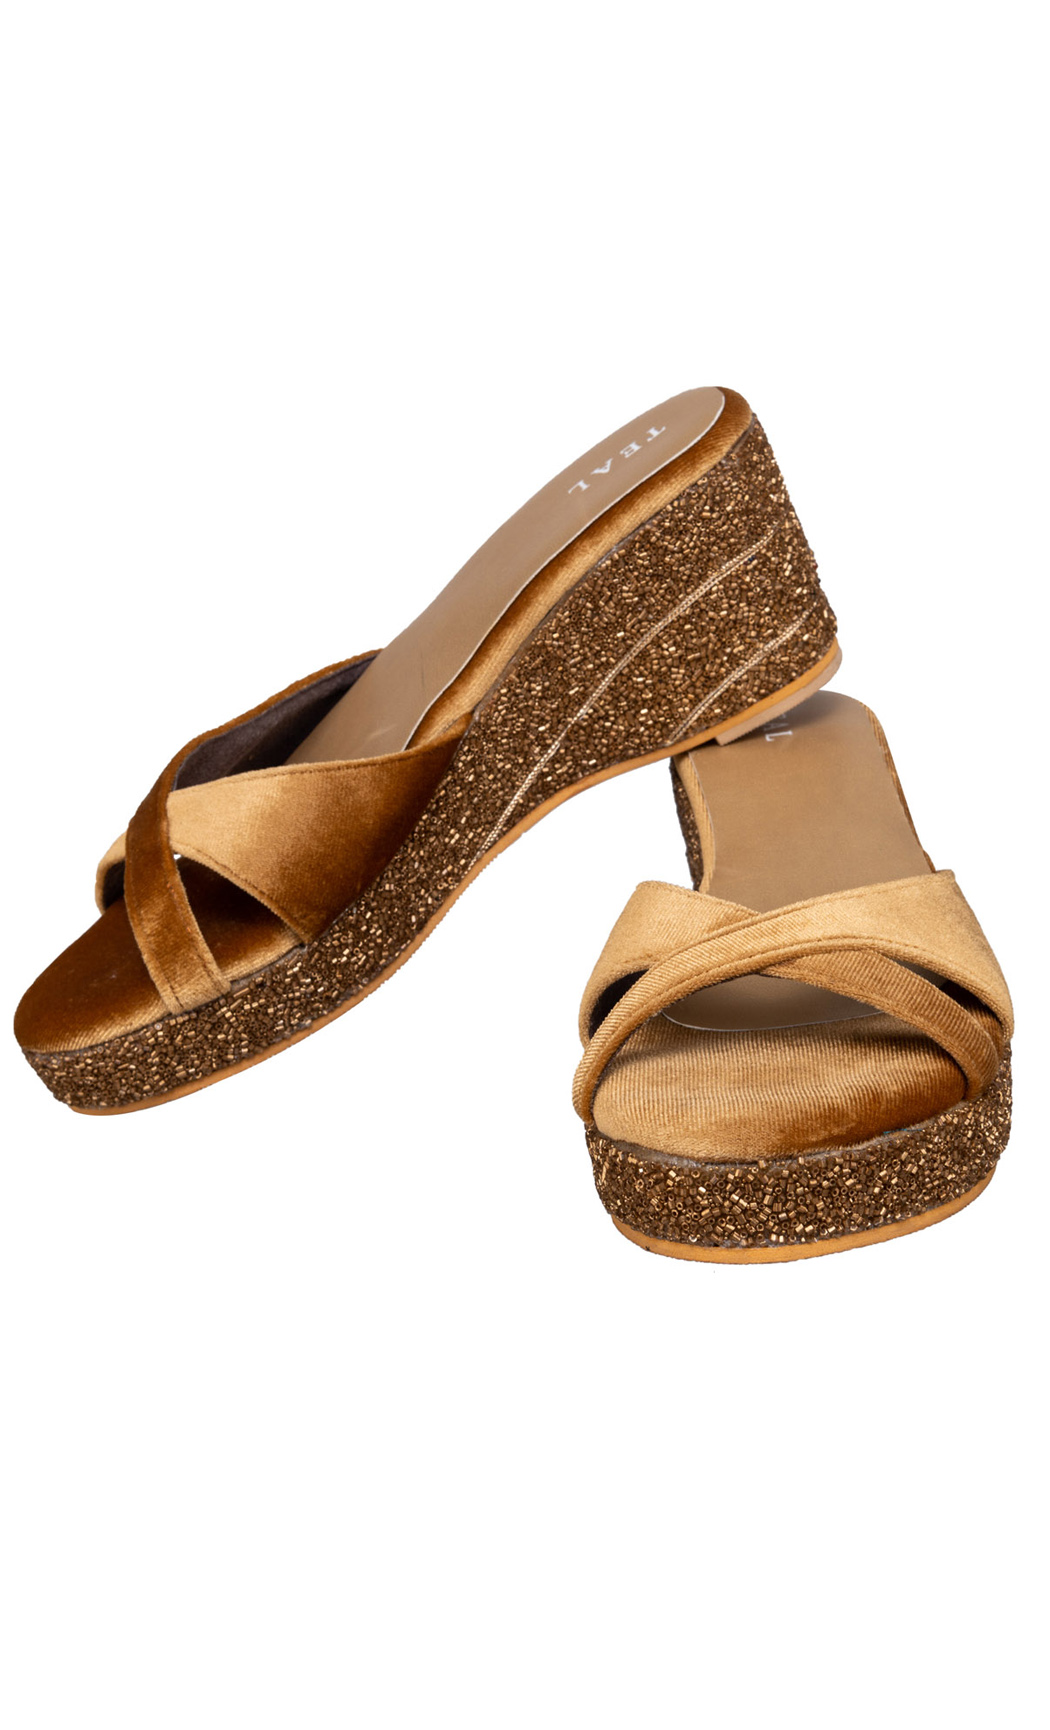 Gold Luxe Wedges - Buy Online